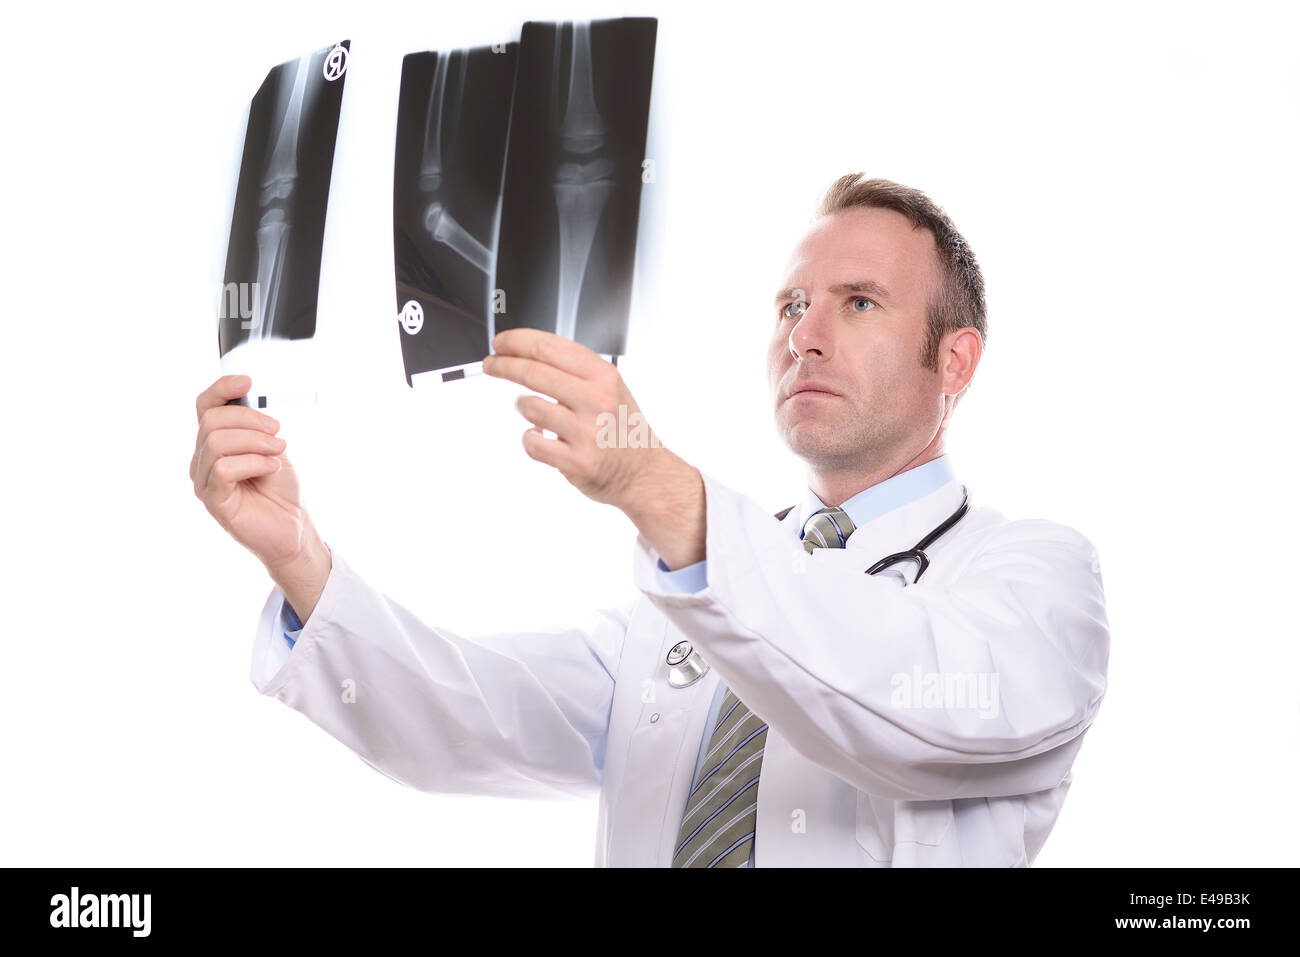 Doctor comparing two x-rays - Stock Image